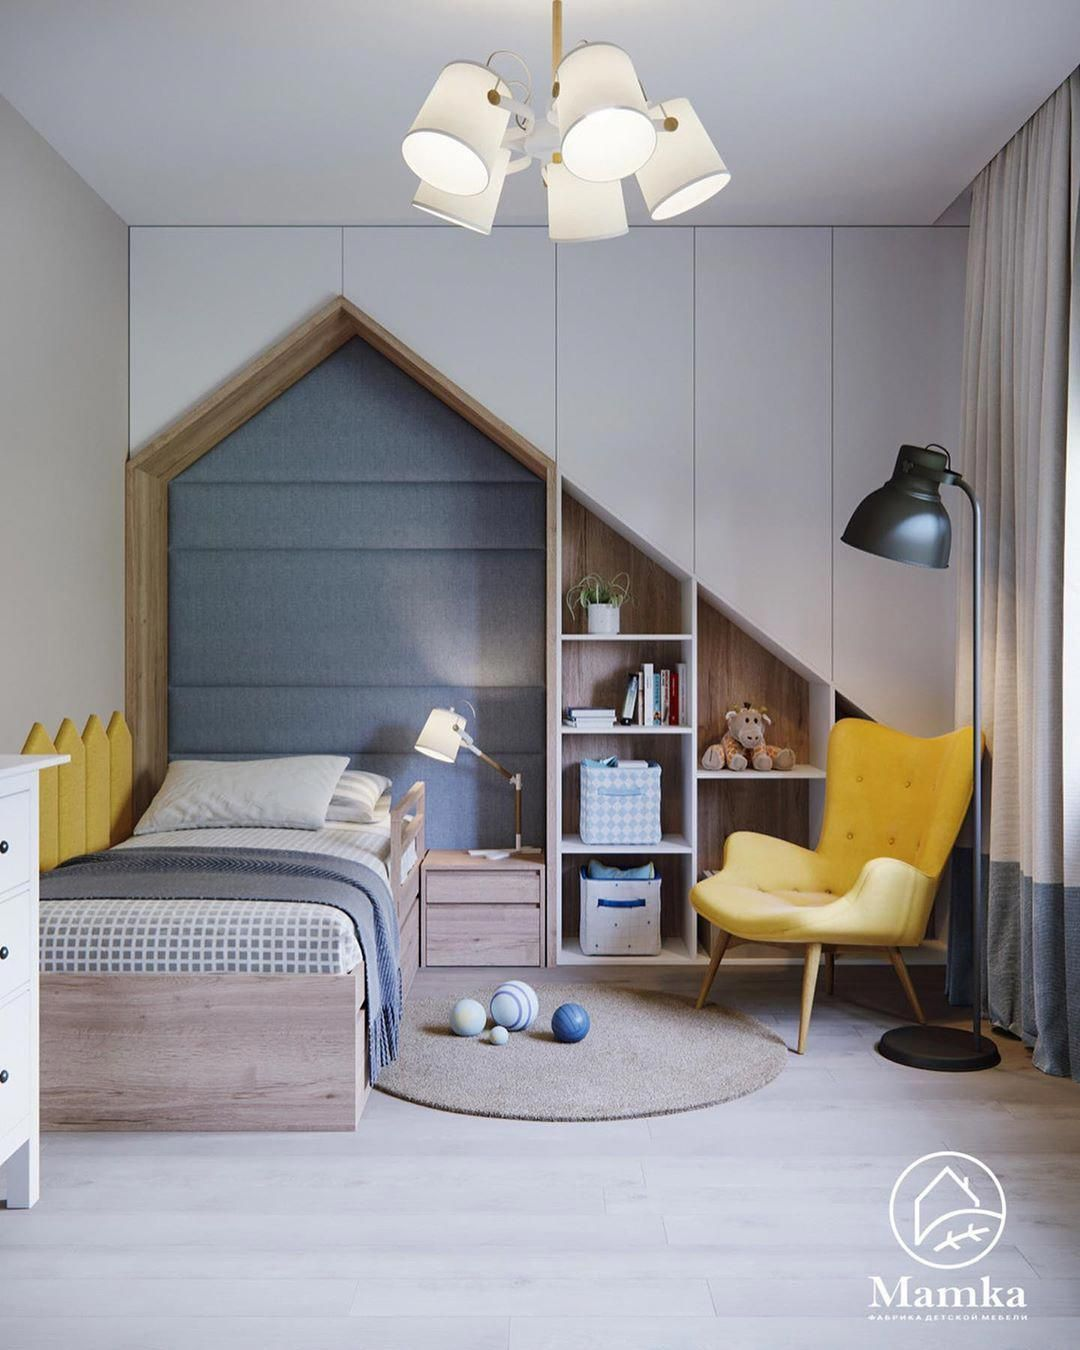 Pin By Ivona Ingelevicienė On Eilinos Kambariui In 2020 Kids Bedroom Inspiration Kids Bedroom Furniture Kids Room Design